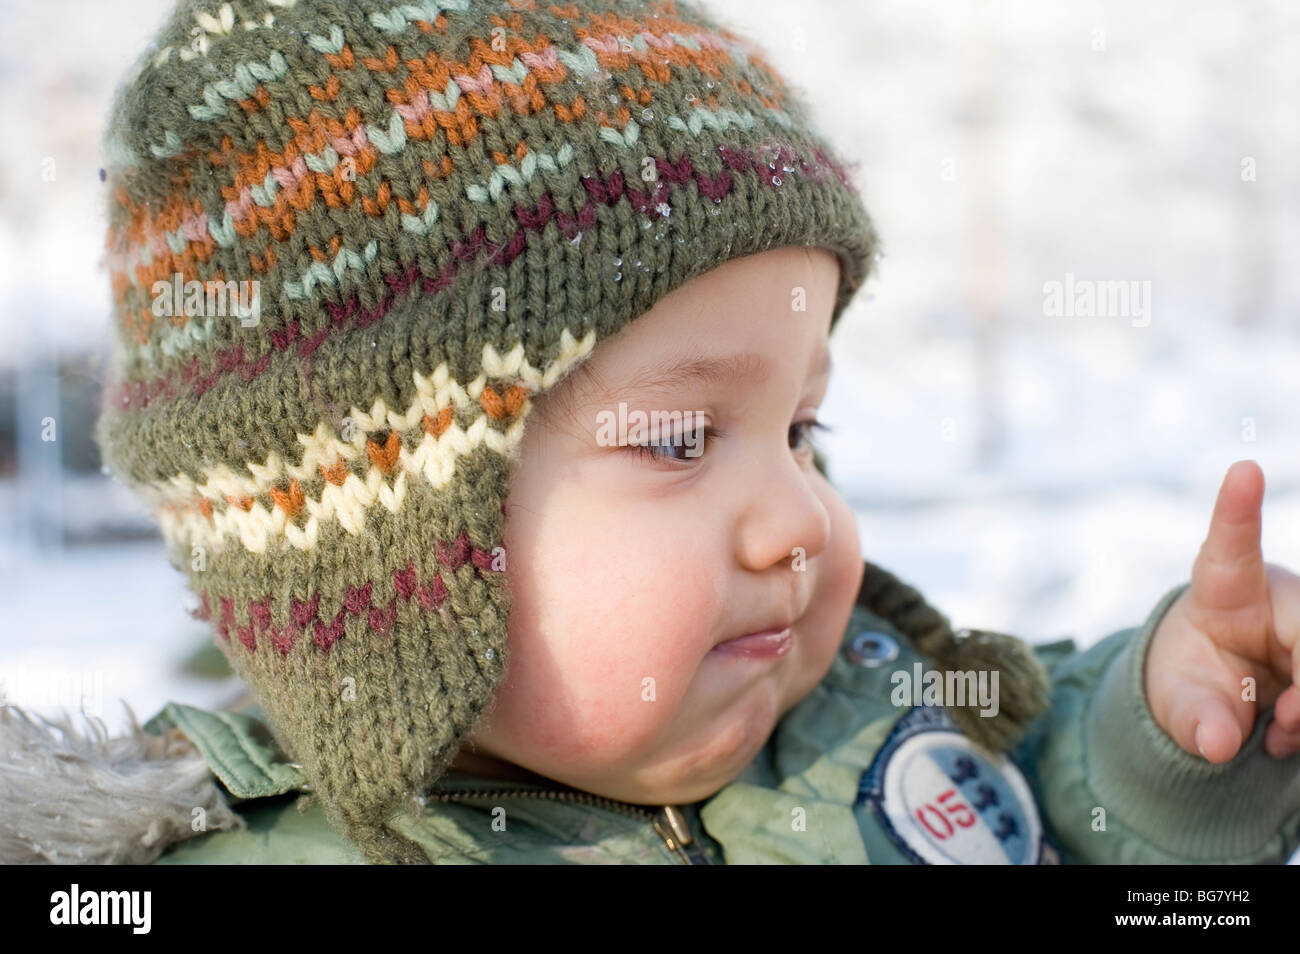 11 month old Hispanic boy plays in fresh fallen snow in his front yard with his mother. Image is model released. - Stock Image